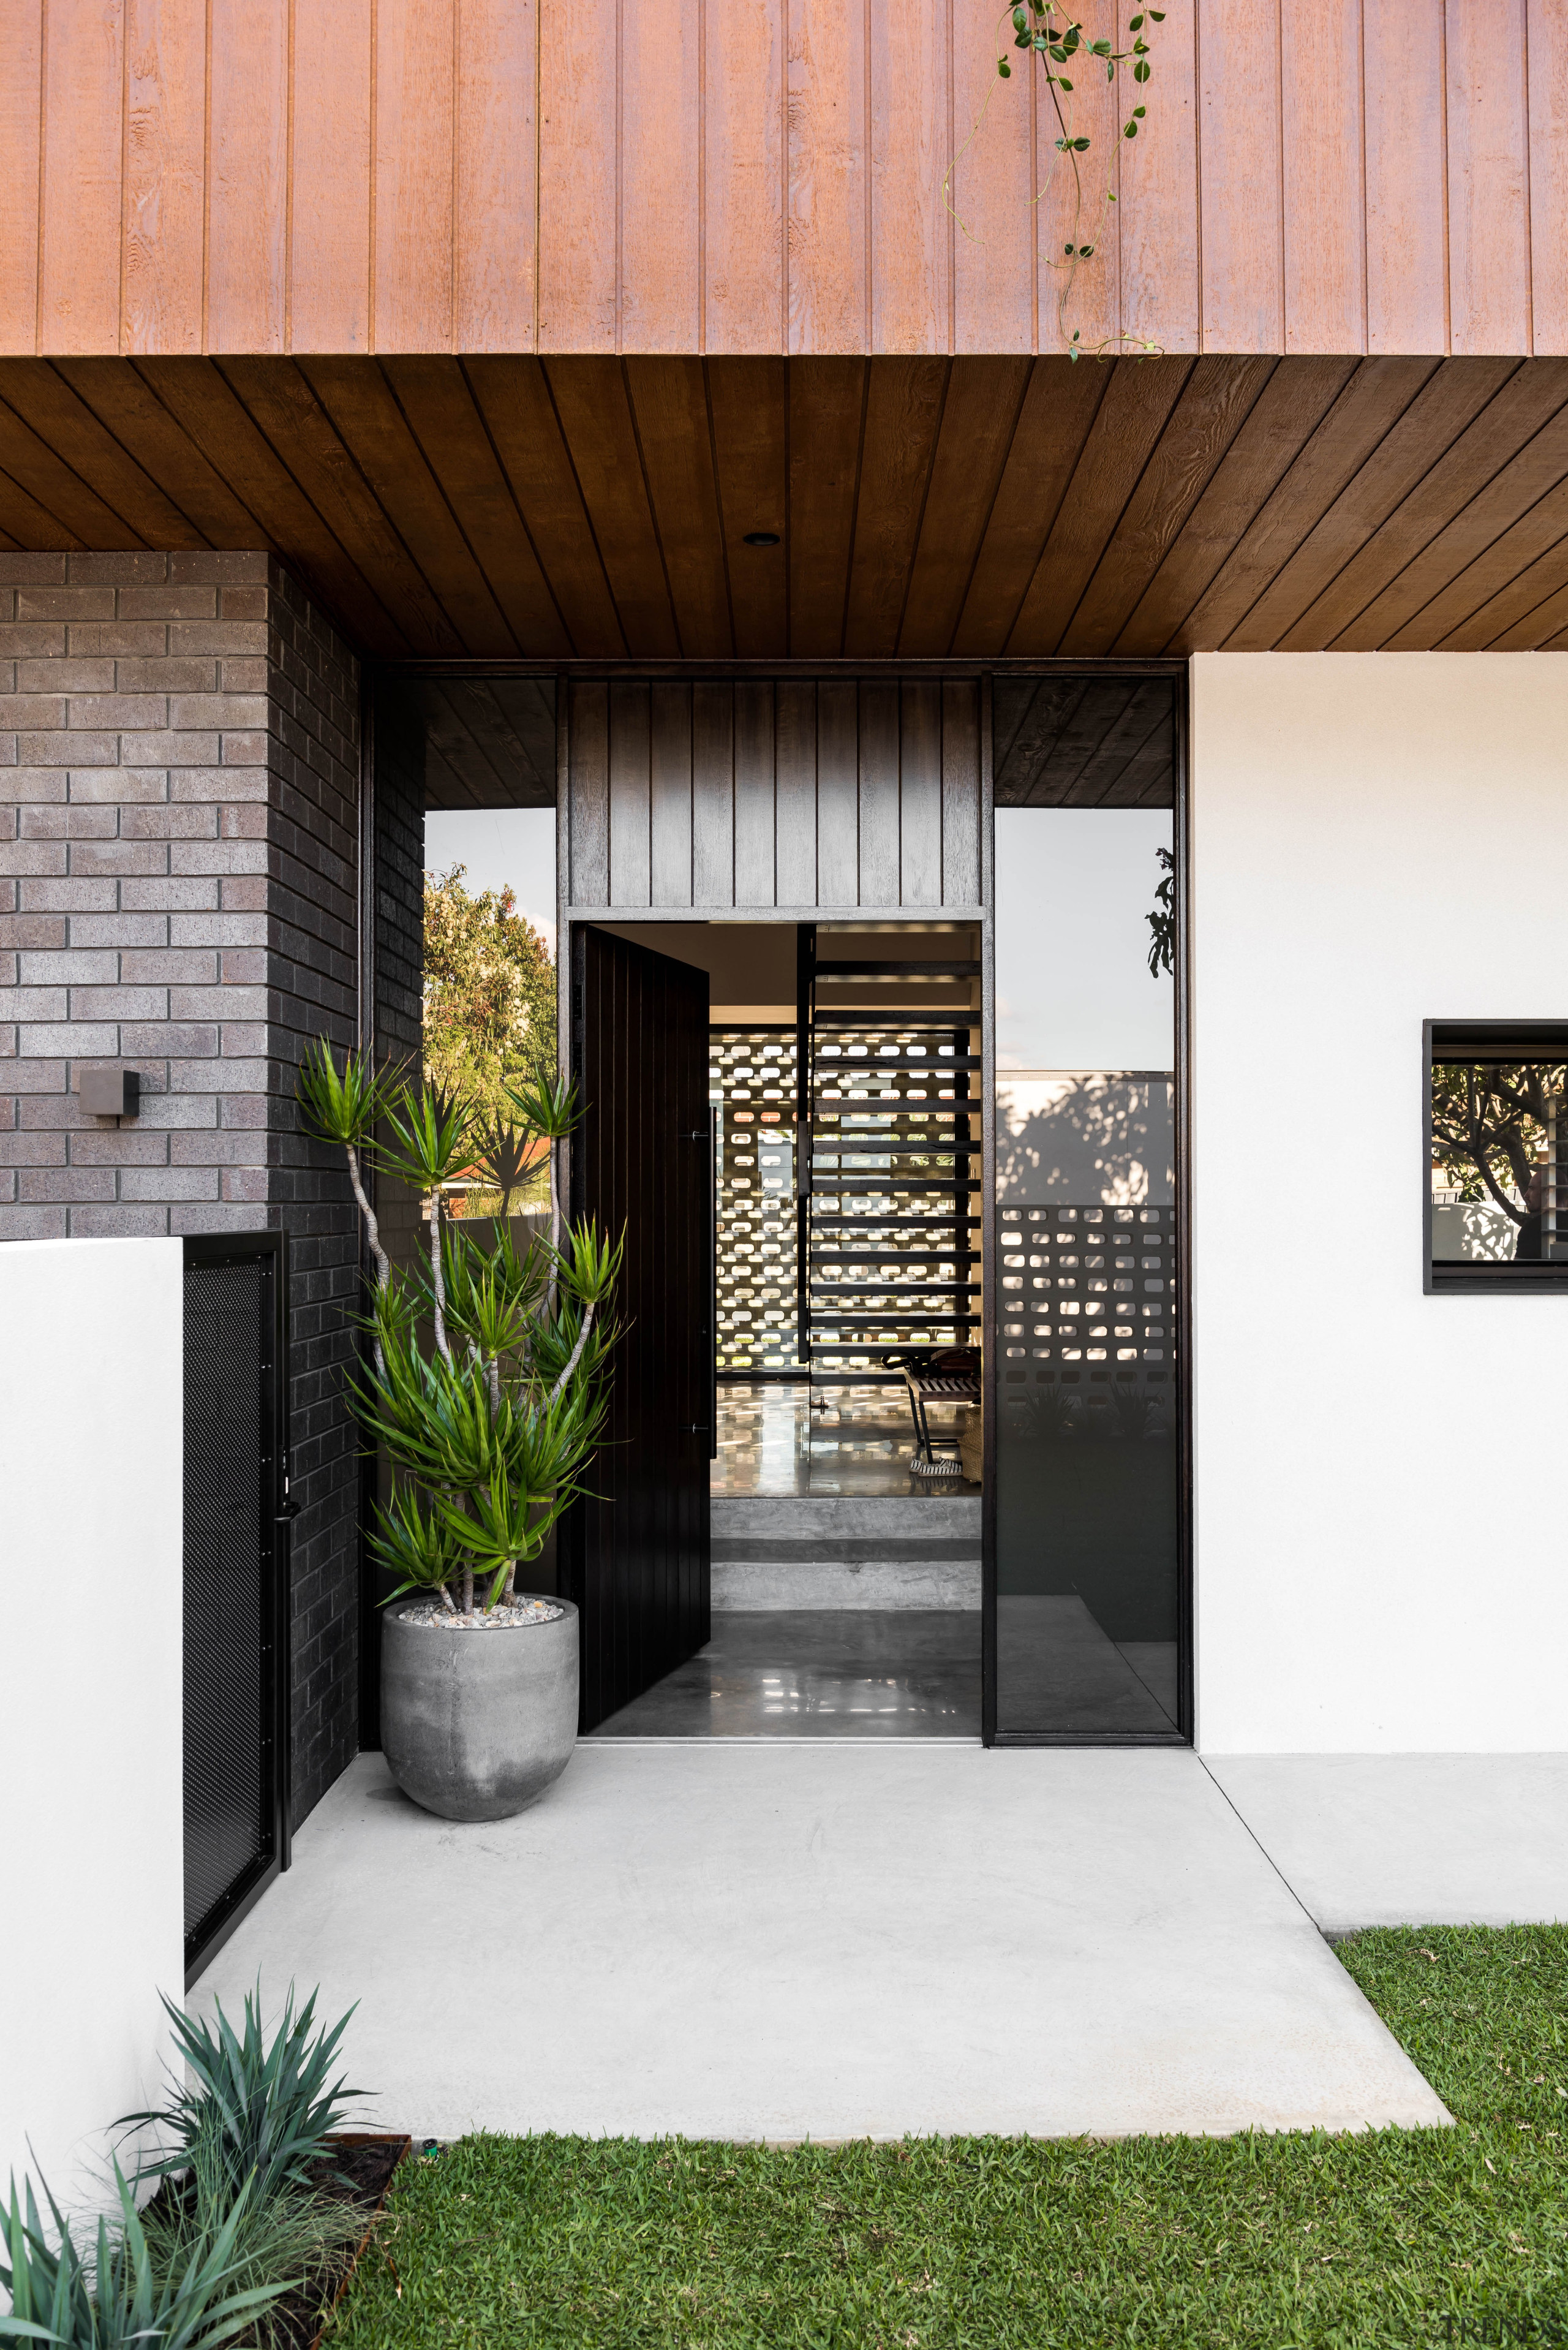 On entry to this home, guests look through architecture, entrance, facade, floor, flooring, grass, home, house, roof, Dalecki Design, Limitless Building